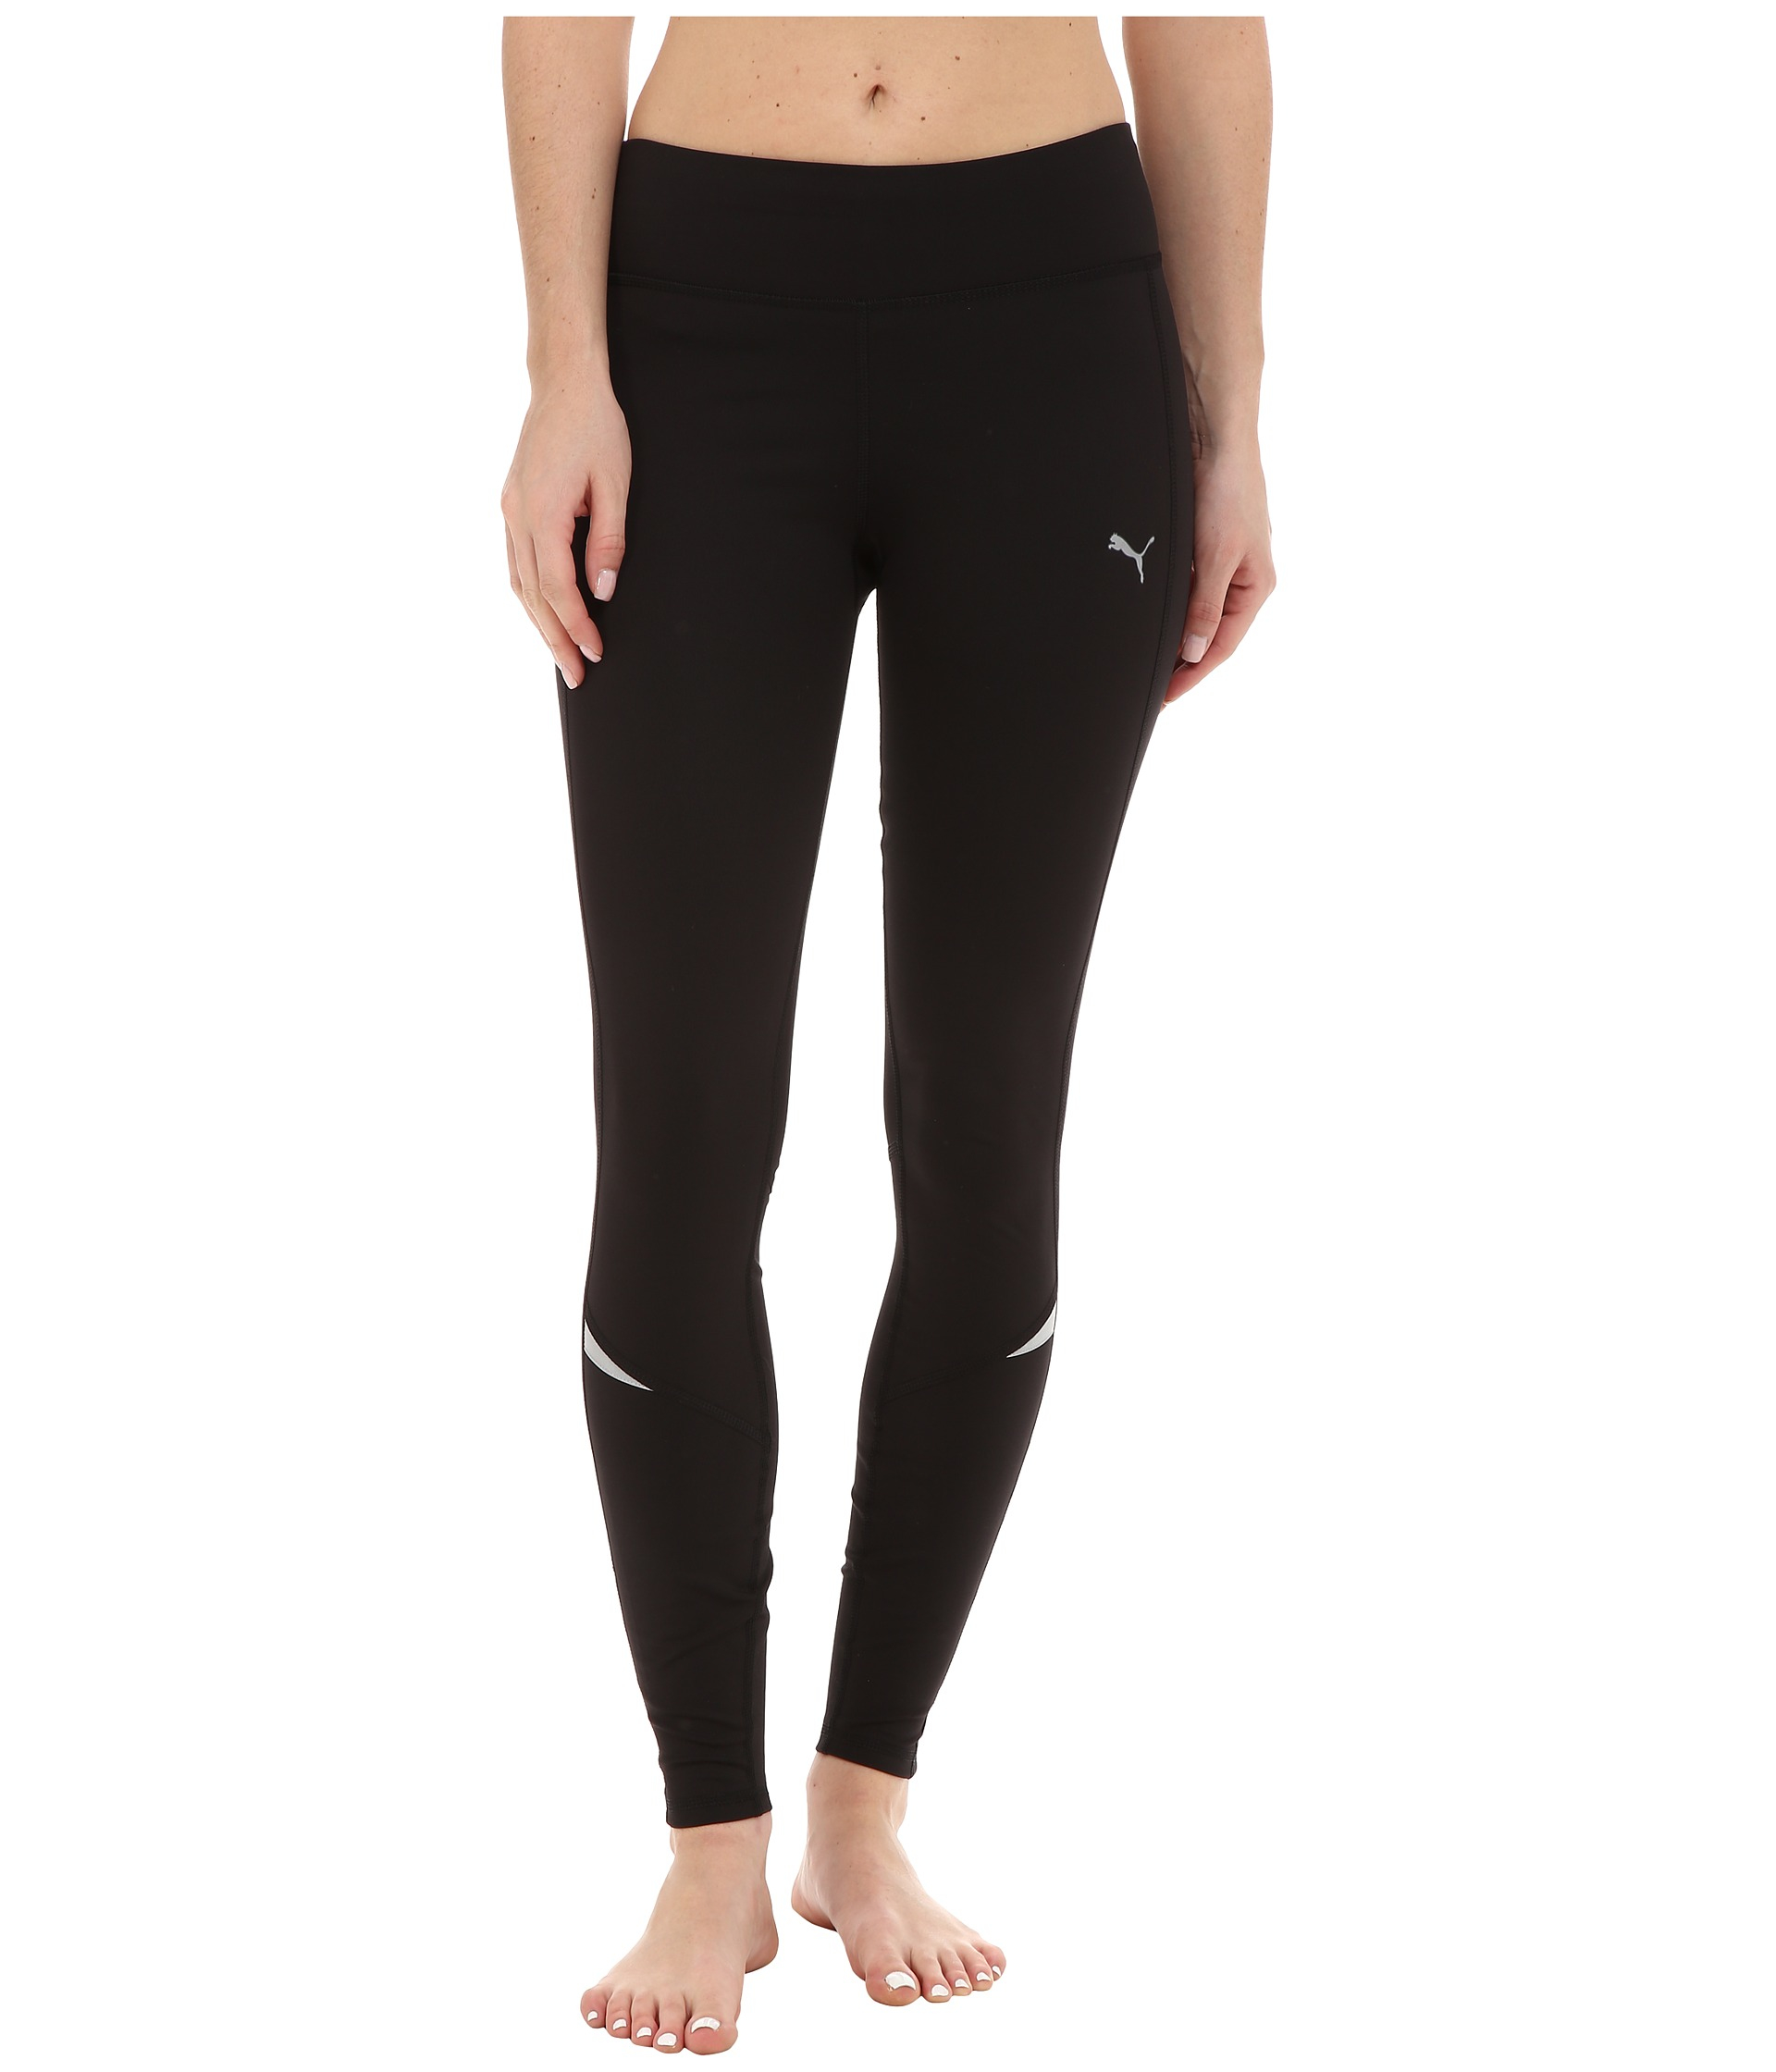 puma power warm tights in black lyst gallery